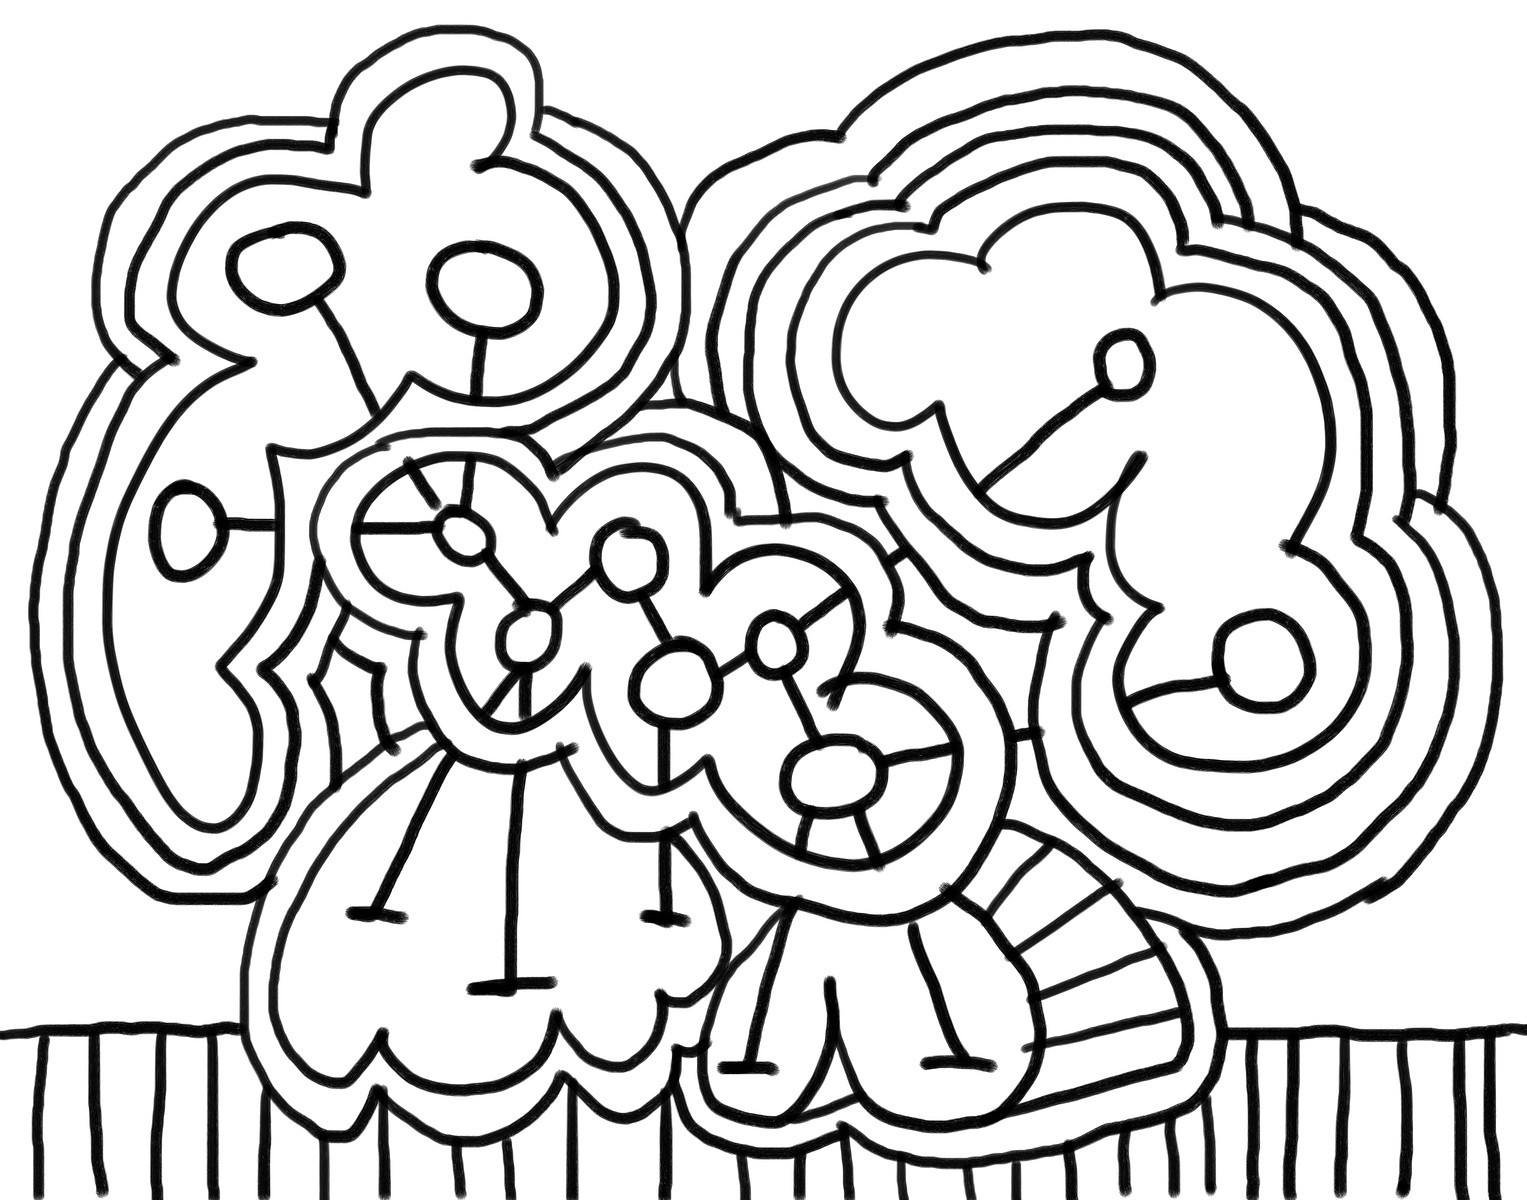 abstract coloring pages for kids - Abstract Coloring Pages Printable